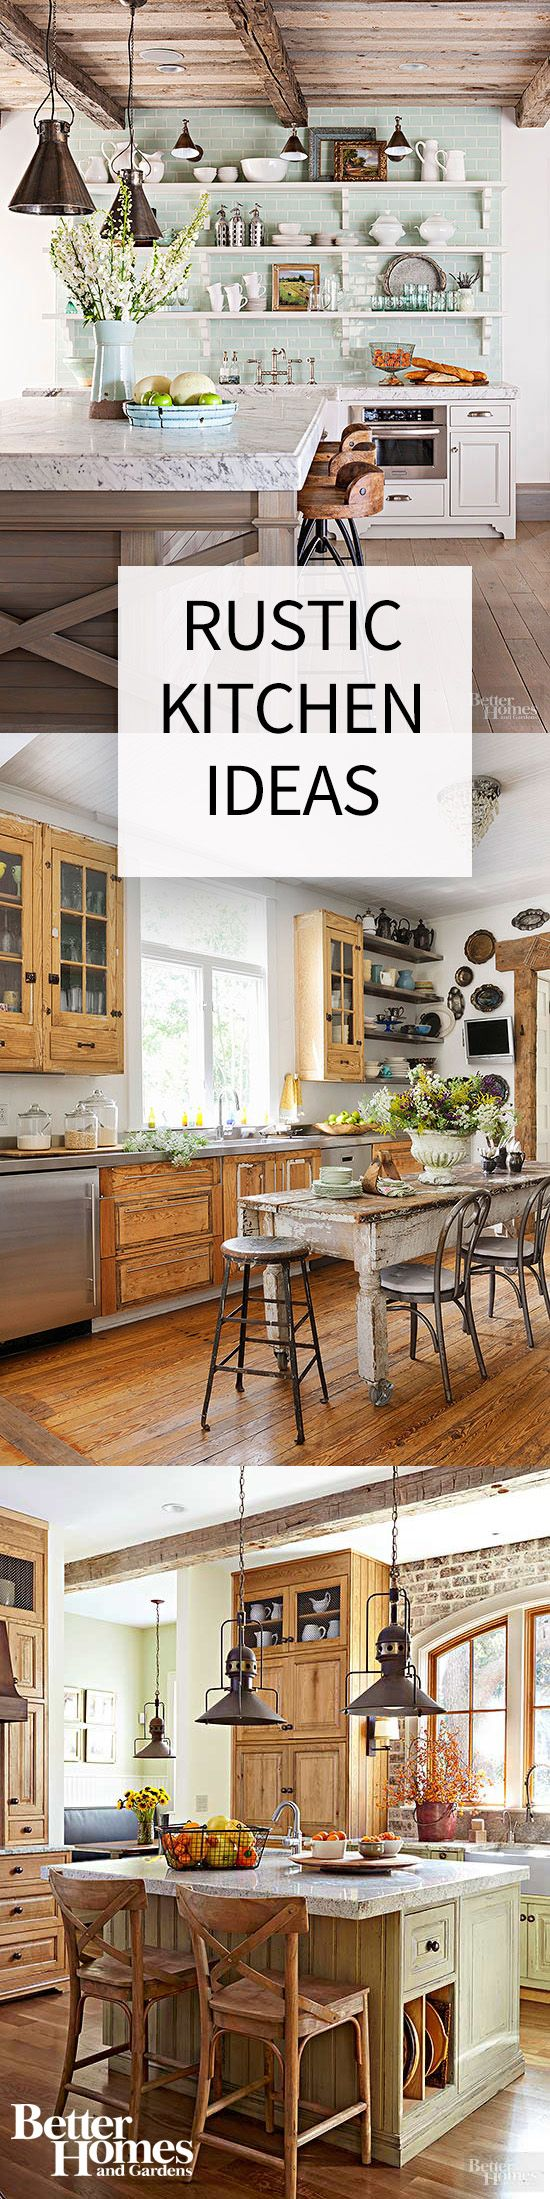 Rustic Kitchen Ideas | Rustic kitchen and Rustic kitchen lighting on nature kitchen ideas, house kitchen ideas, flea market living room, vintage french kitchen ideas, vinyl kitchen ideas, plants kitchen ideas, flea market garden, flea market decorating, flea market food, flea market design, travel kitchen ideas, flea market style, school kitchen ideas, photography kitchen ideas, flea market home, apartments kitchen ideas, fixer upper kitchen ideas, furniture kitchen ideas, flea market pets, craft kitchen ideas,